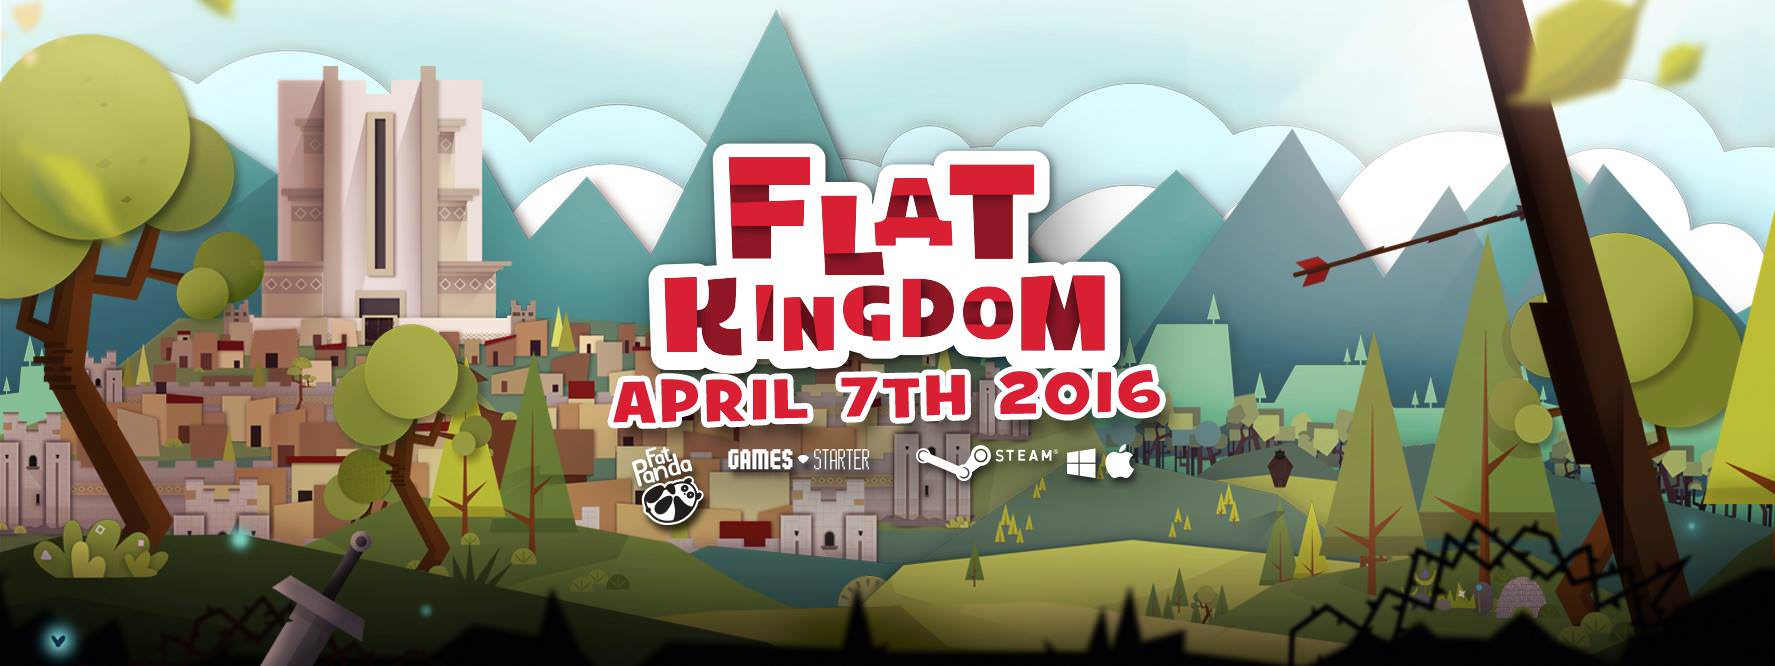 Flat Kingdom launches next week!